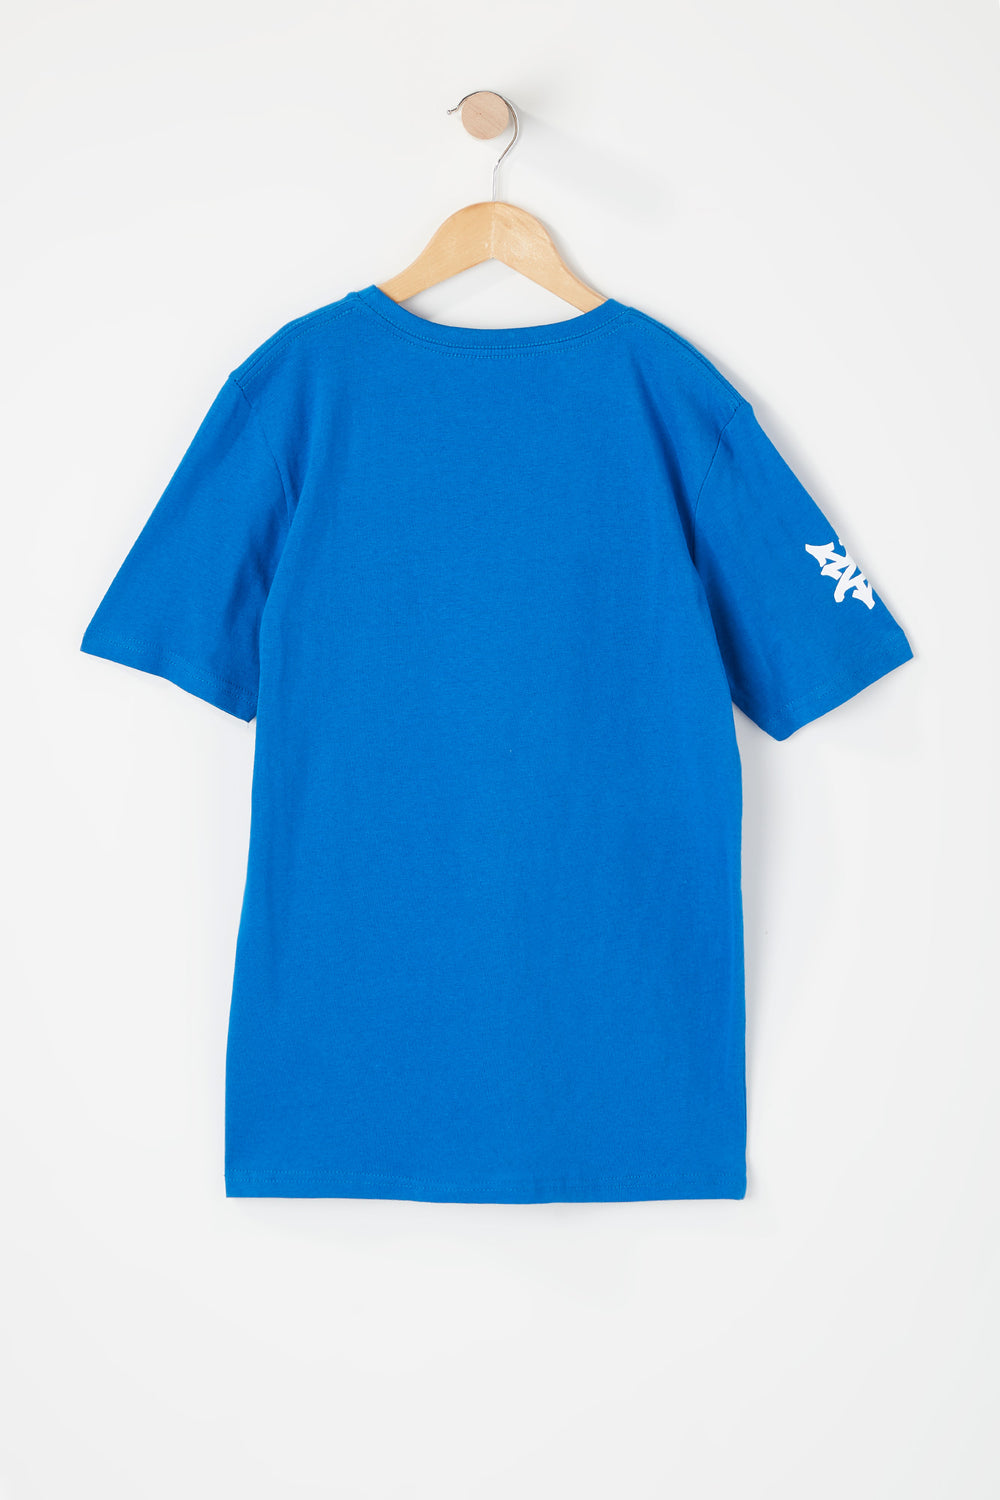 T-Shirt Logo Zoo York Junior Bleu